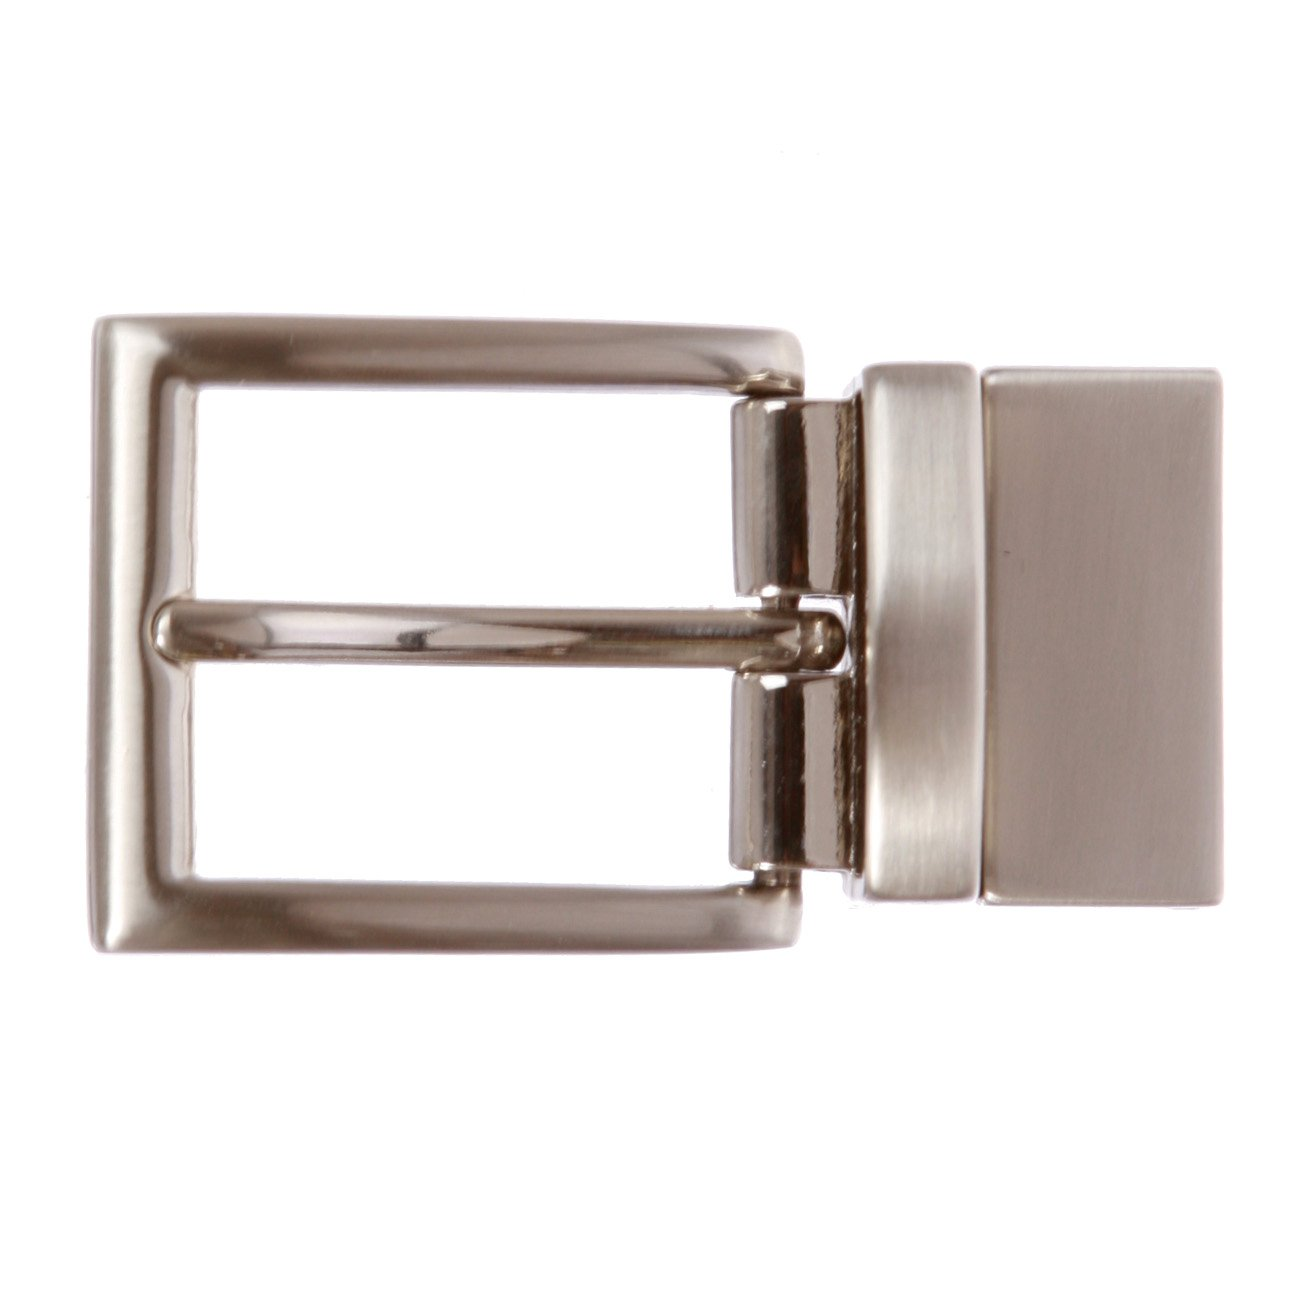 1 1/8 Inch (30 mm) Reversible Clamp Belt Buckle Silver 300113-17go